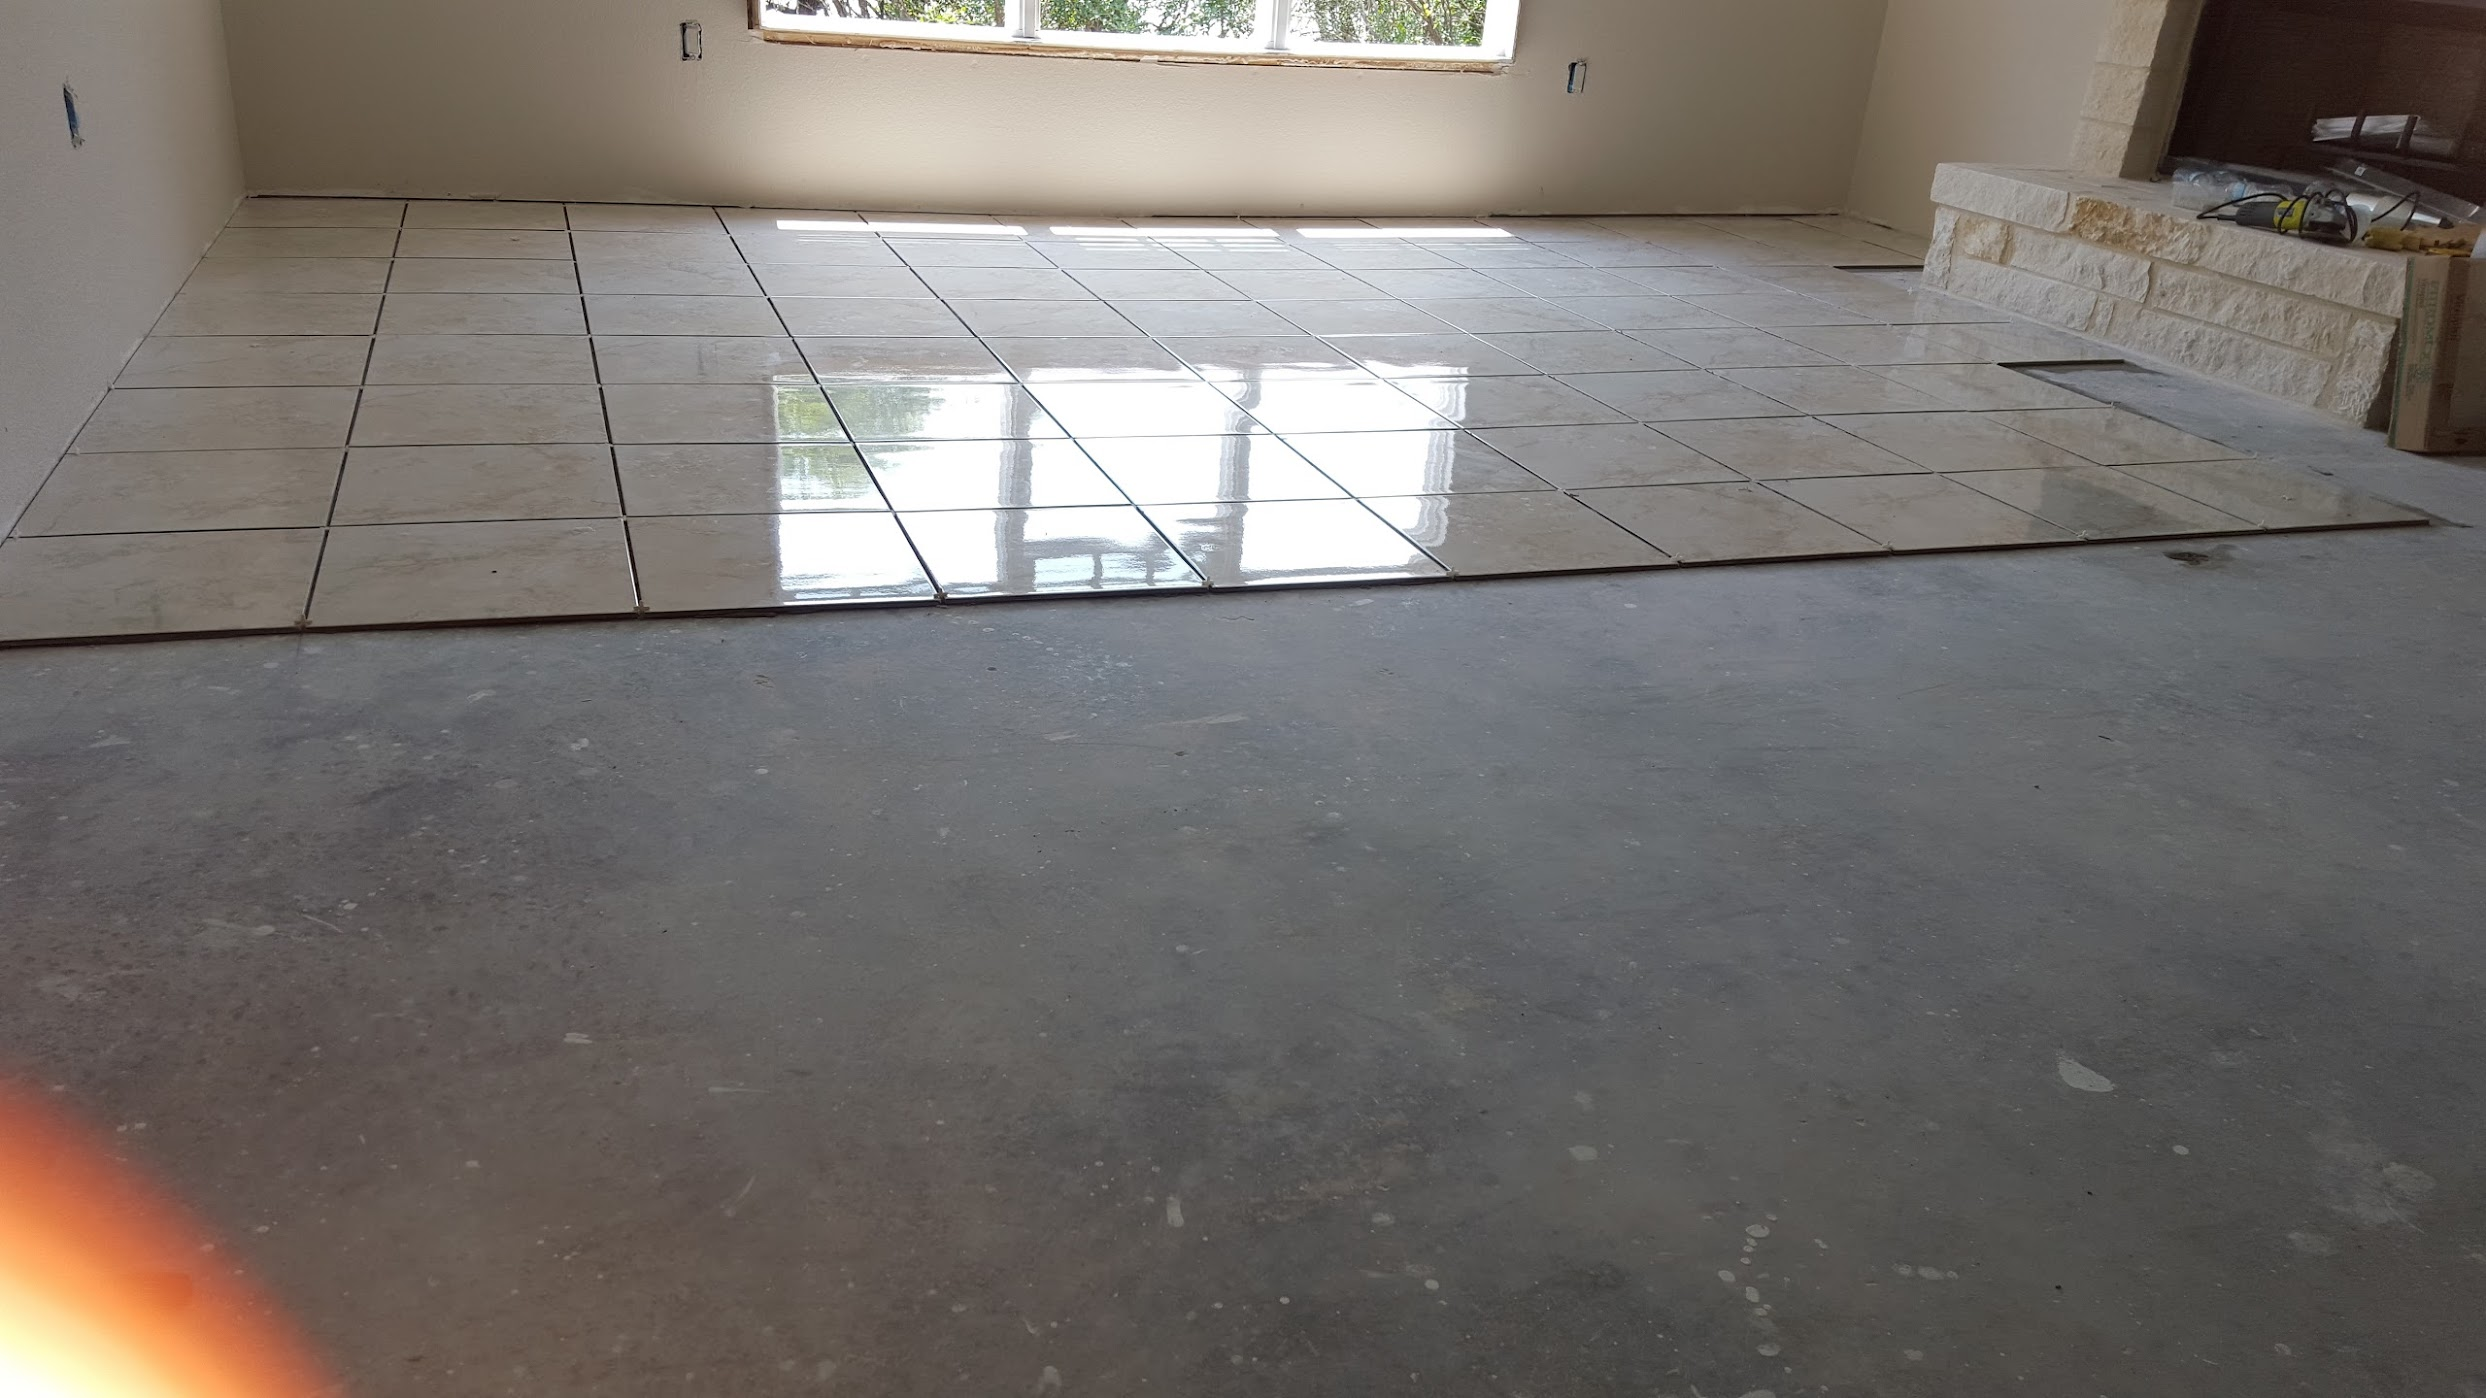 R & M Flooring - San Antonio, TX - Quality Floors